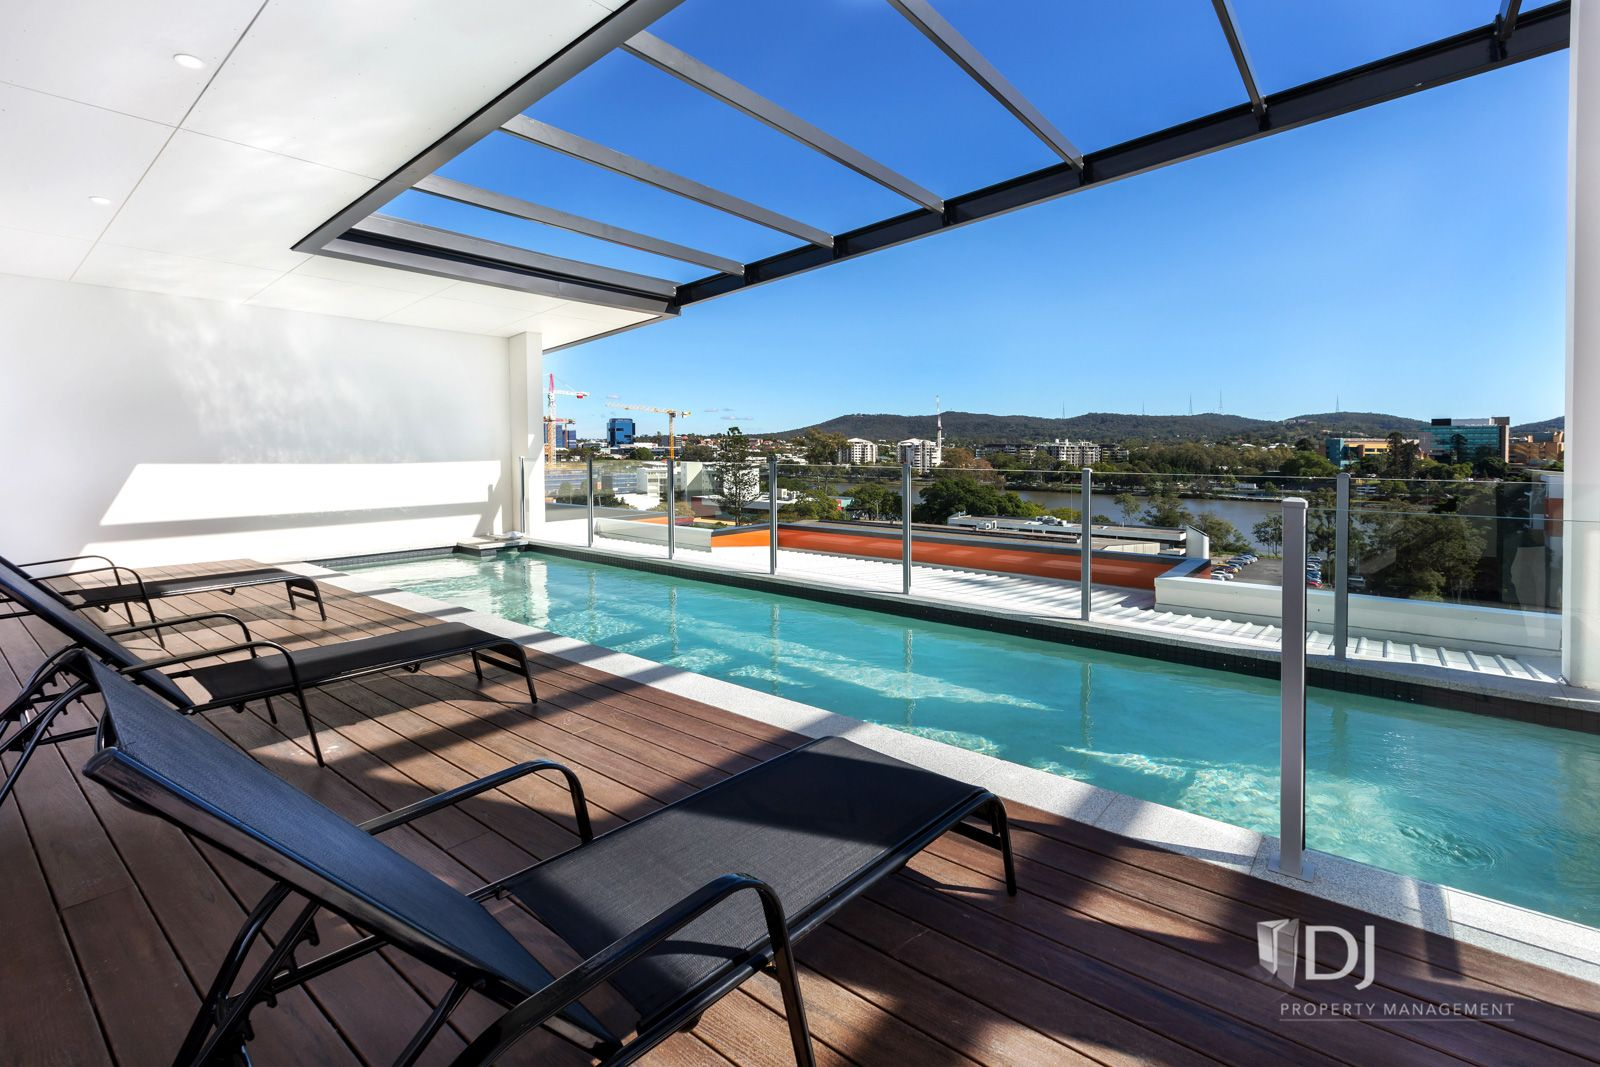 12-16 Beesley St, West End QLD 4101, Image 0